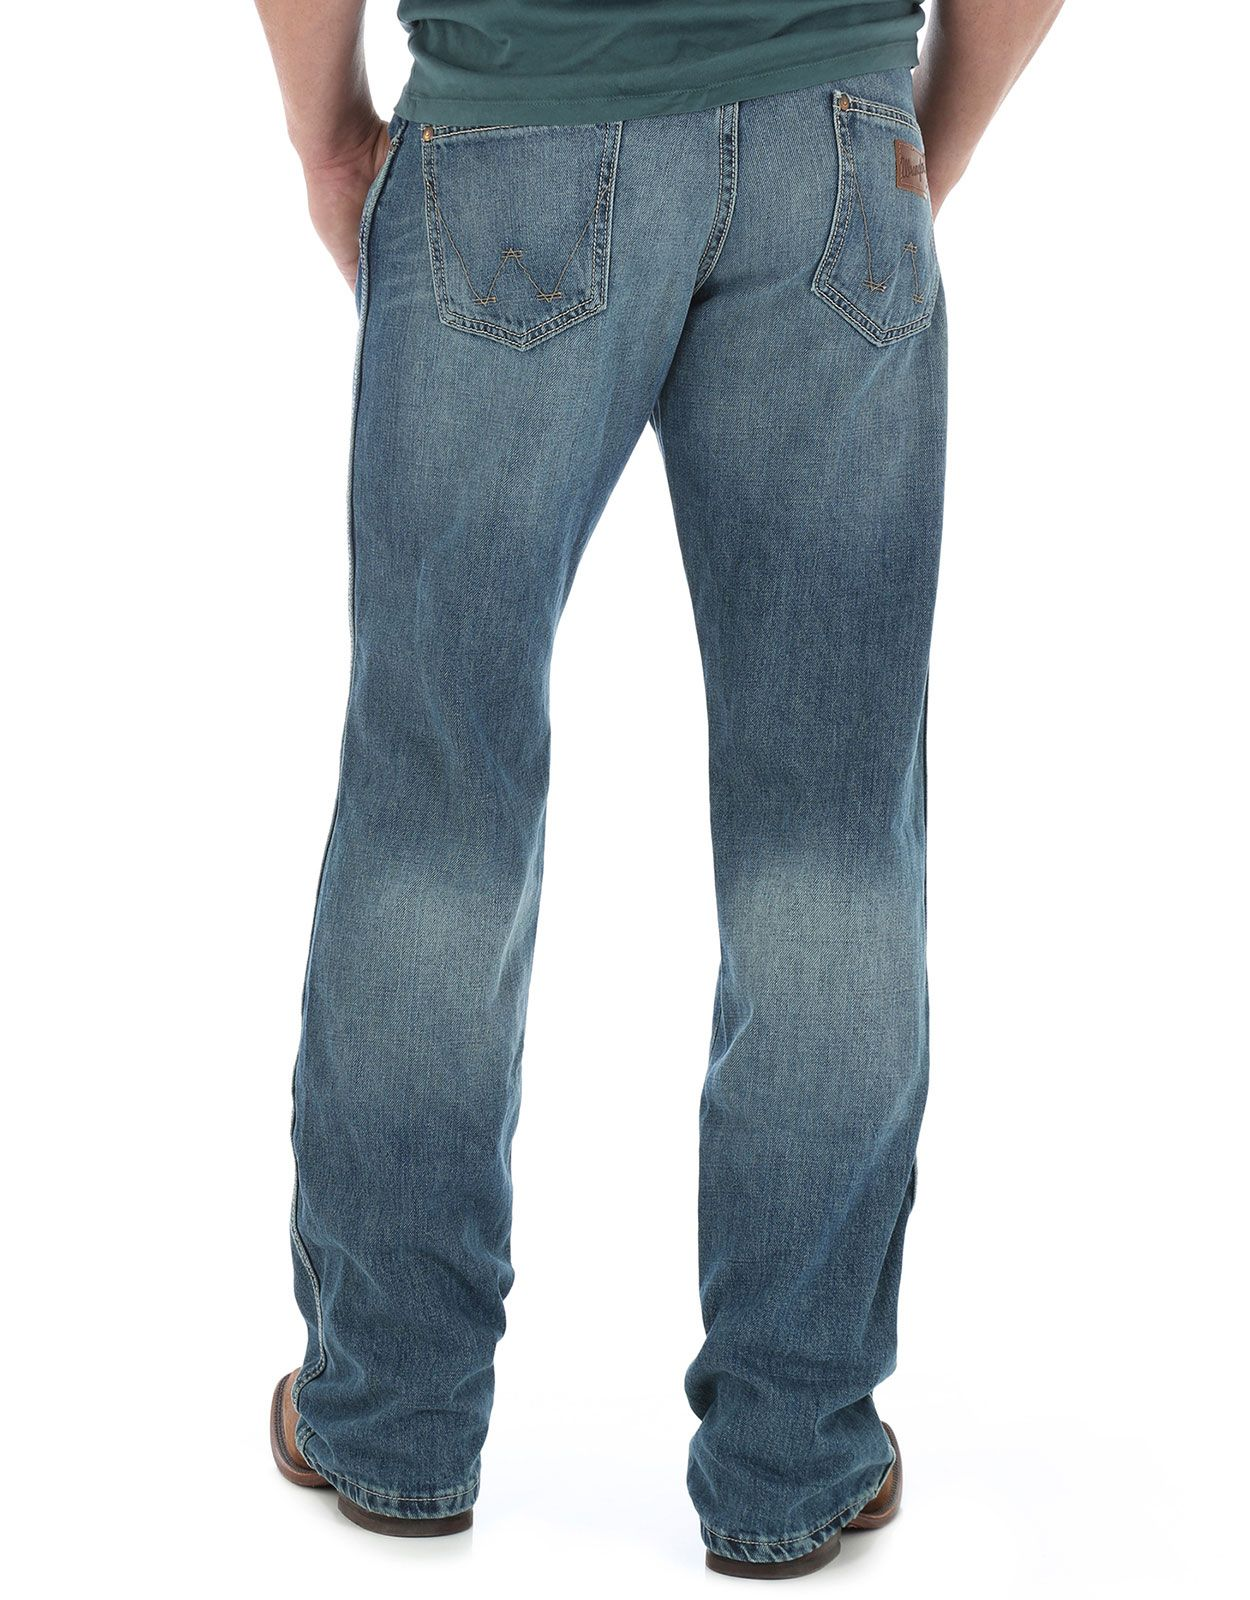 Wrangler Men's Retro Mid Rise Relaxed Fit Boot Cut Jeans - Rocky Top